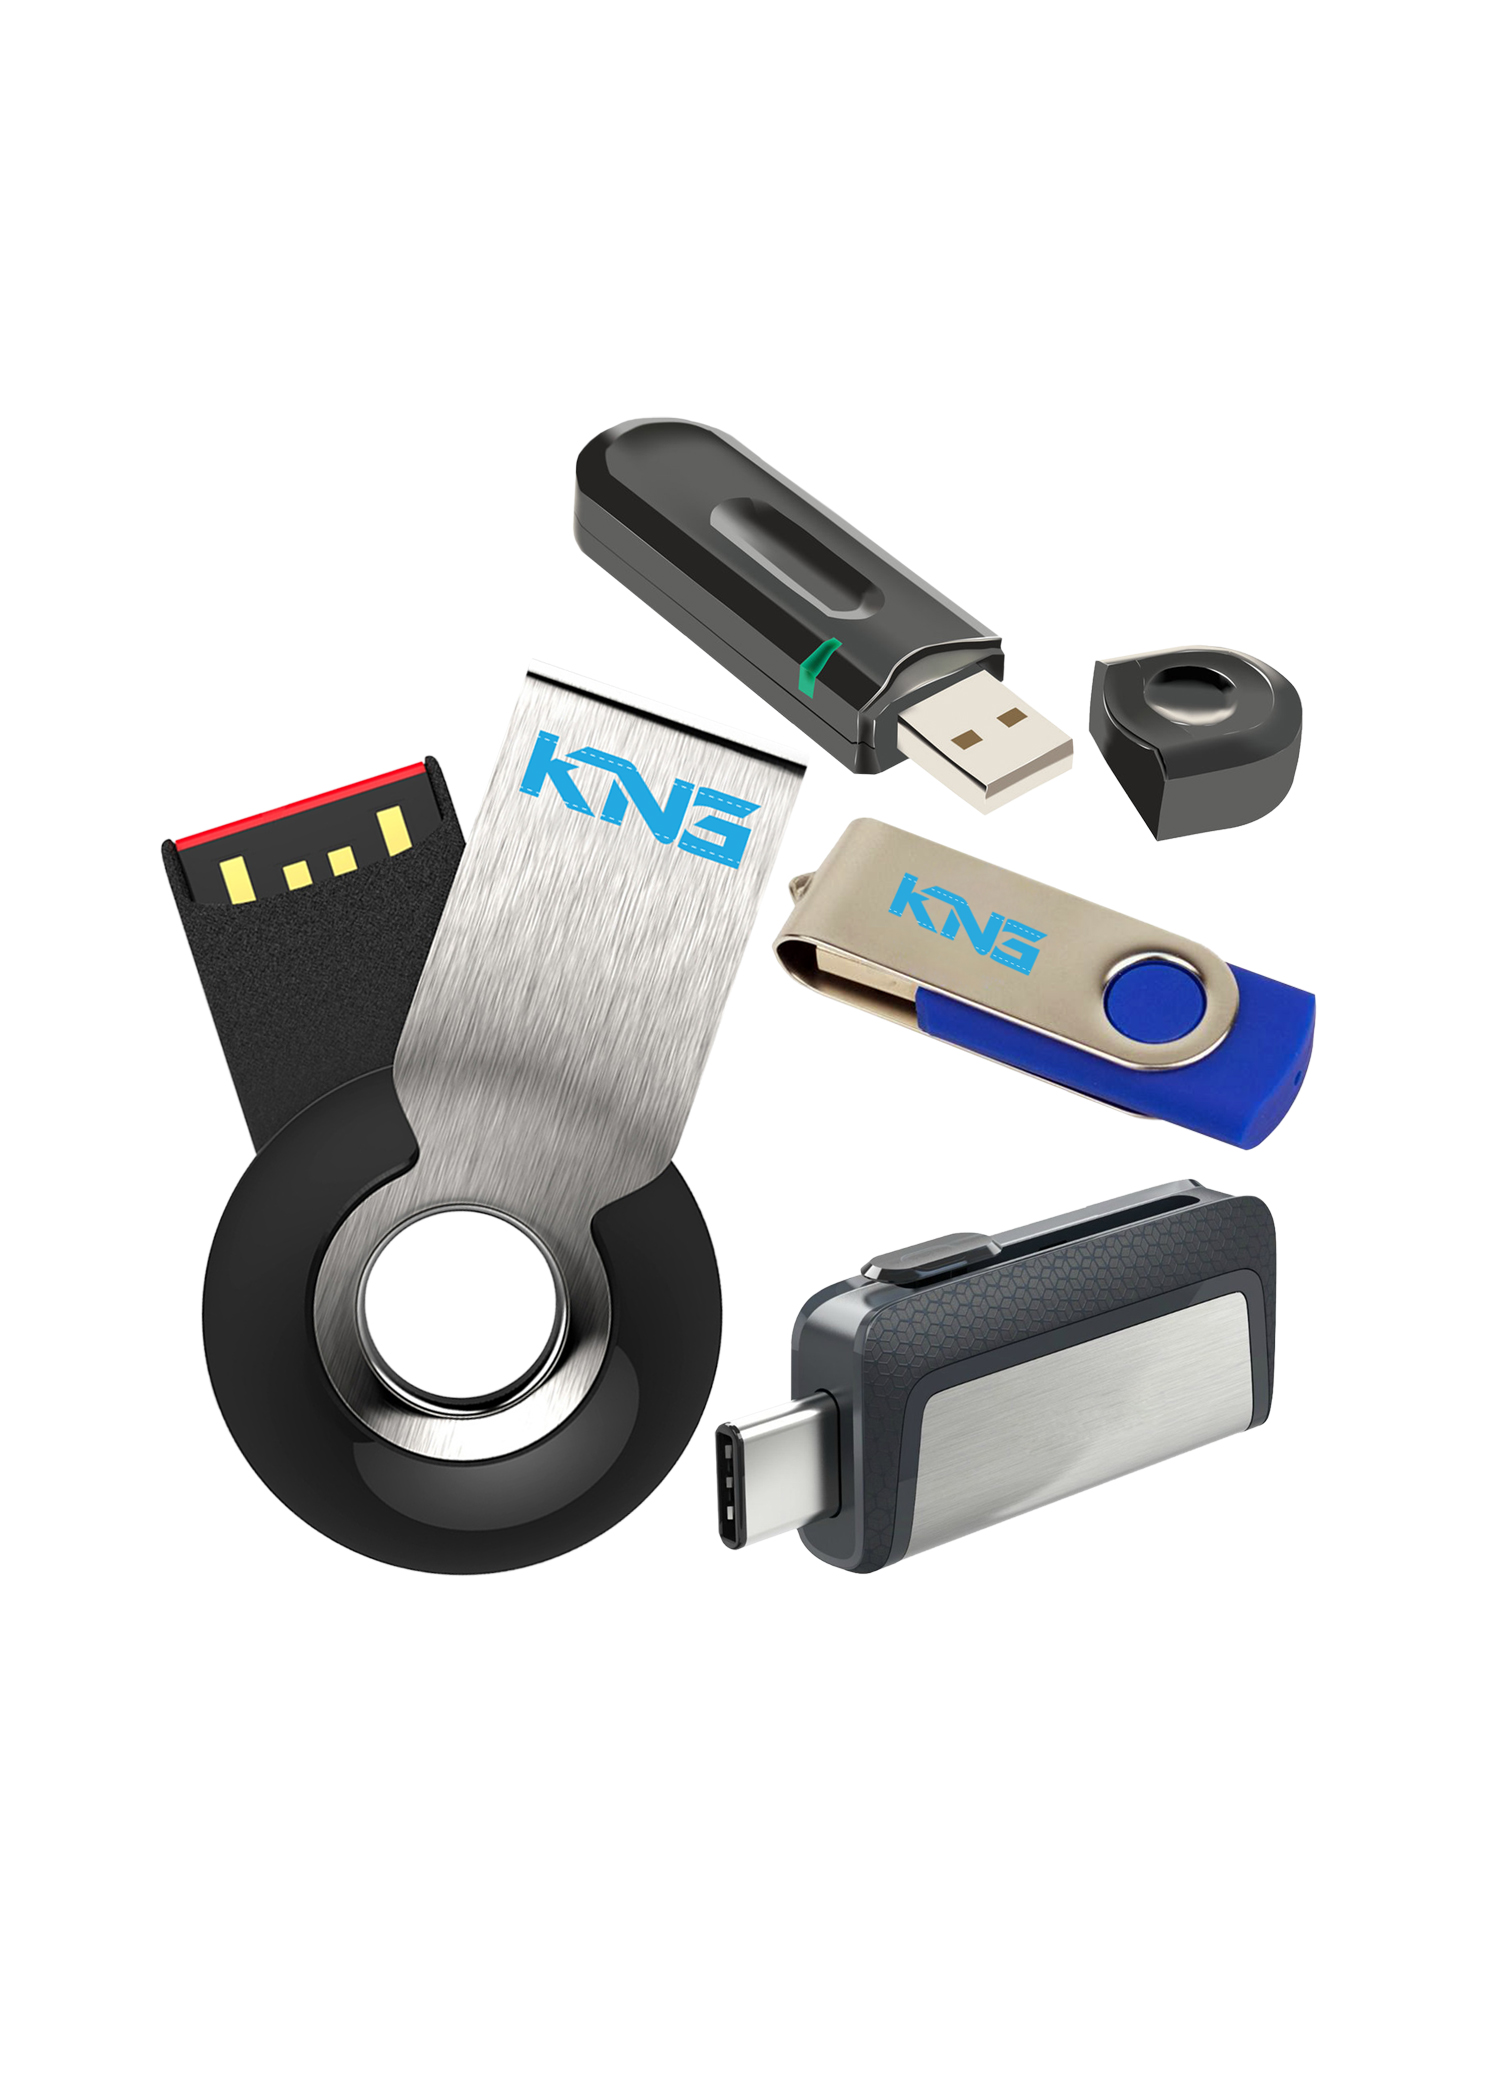 Catalogue flash drive